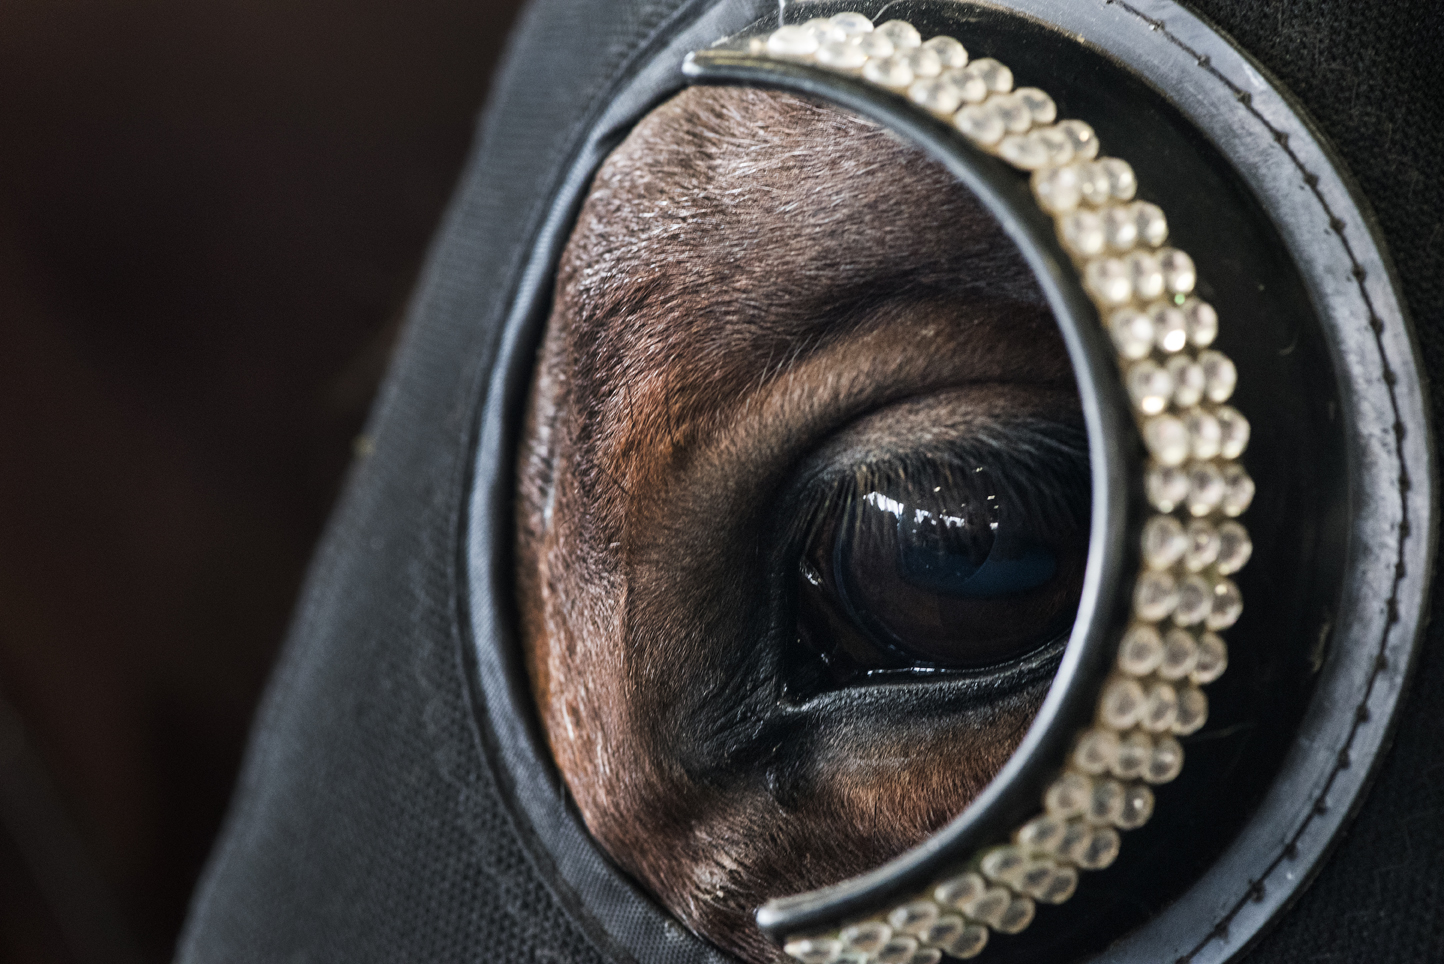 Skittish horses wear blinders and ear plugs to help keep them calm around the excitement and gunfire.